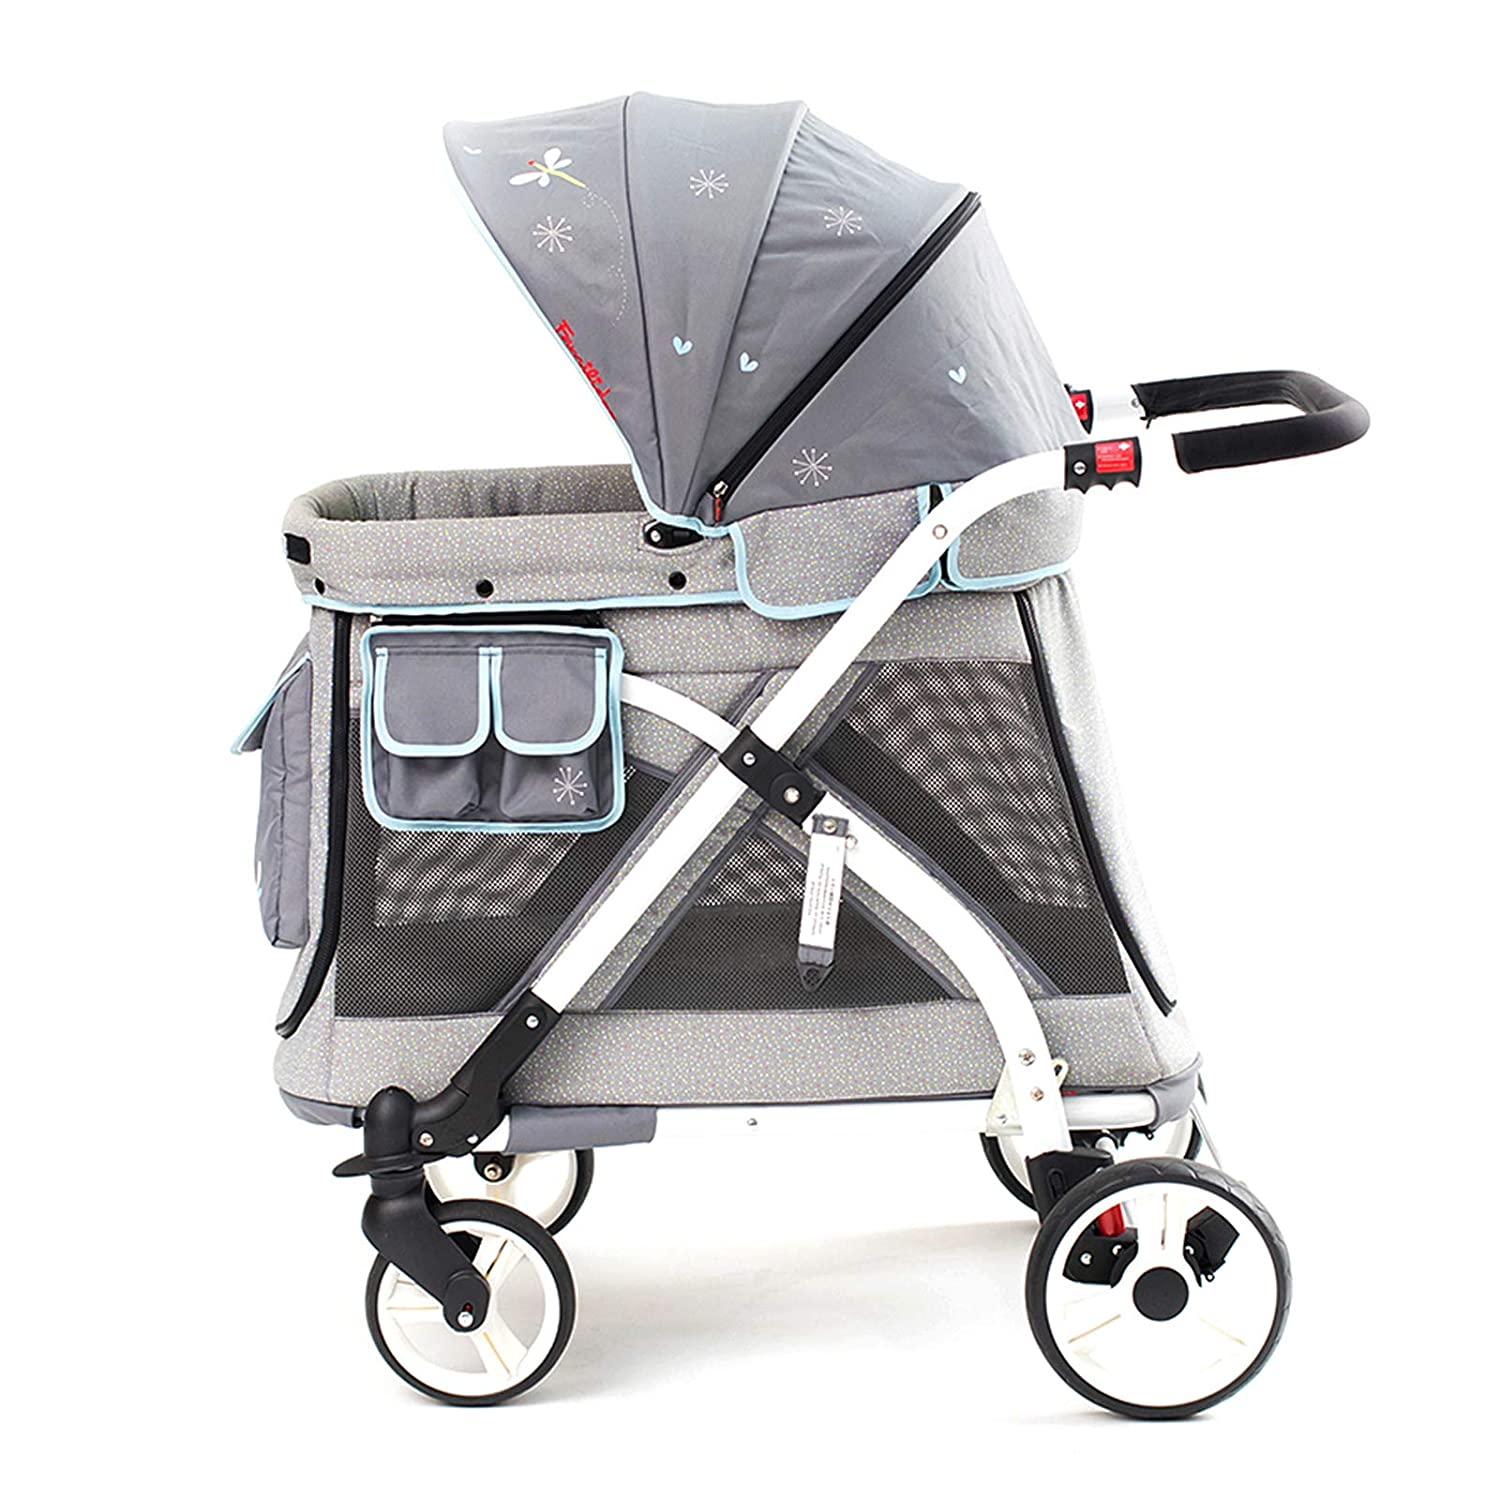 Familidoo Multi-Purpose Folding Single Stroller Wagon with Deep Carriage, Zipper Doors, Removable Reversible Canopy, Seat Chariot Mini Gray